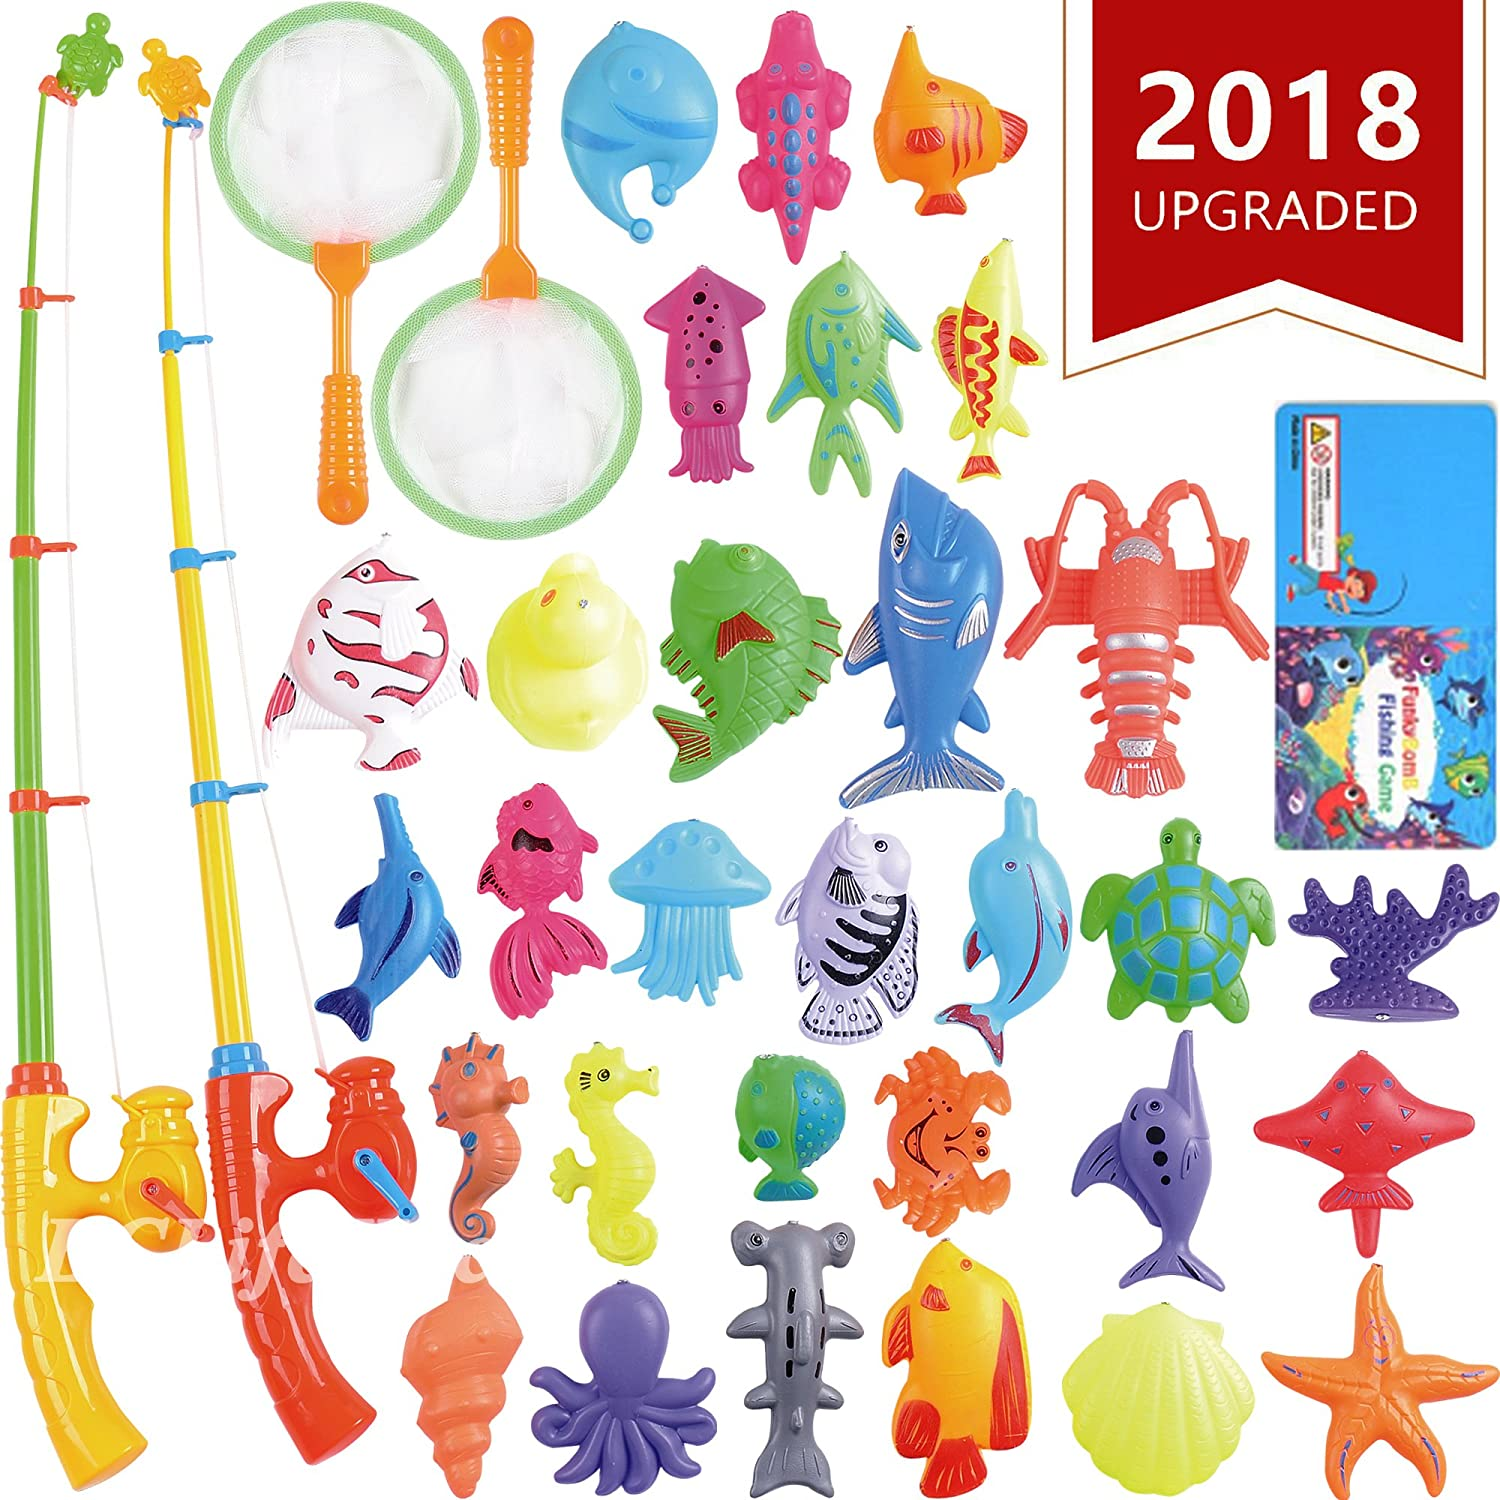 Magnetic Fishing Toys Game Set for Kids by ECLifeHack for Bathtime or Pool Party with Pole Rod Net, Plastic Floating Fish - Toddler Education Teaching and Learning of all Size Colors Ocean Sea Animals